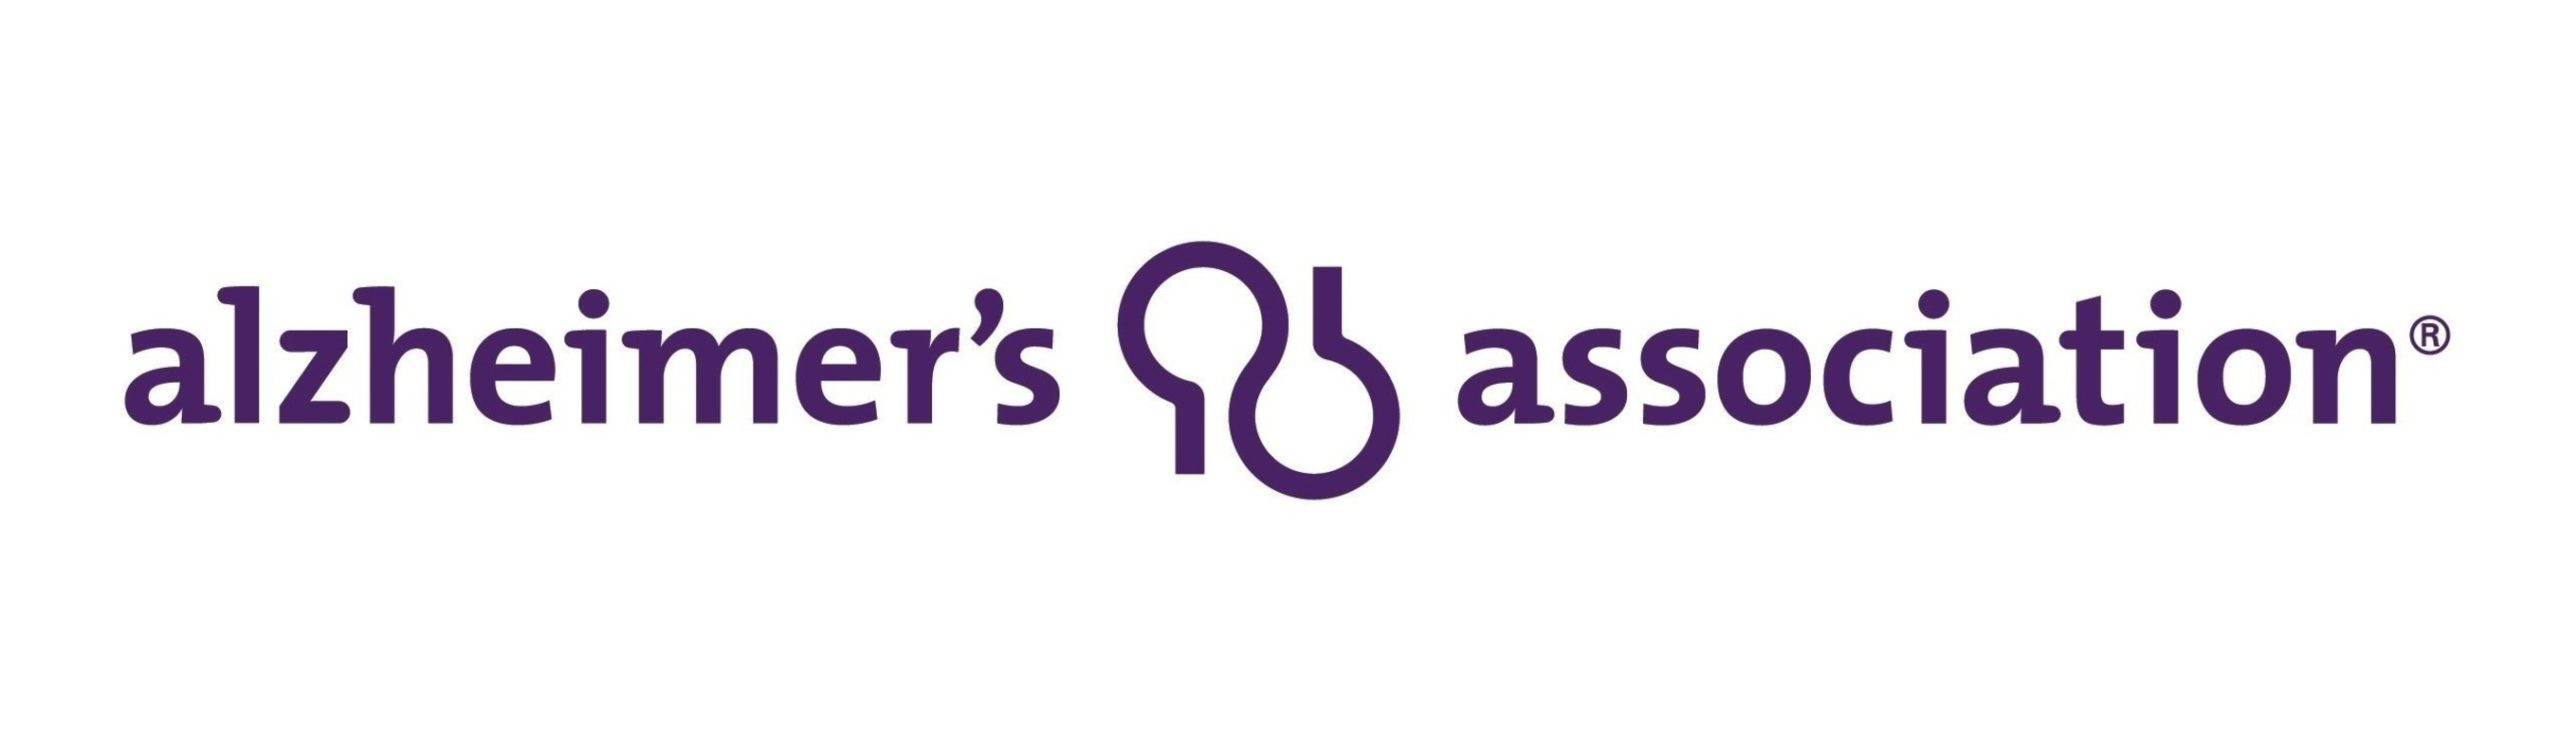 External Link to Alzheimers Association Website